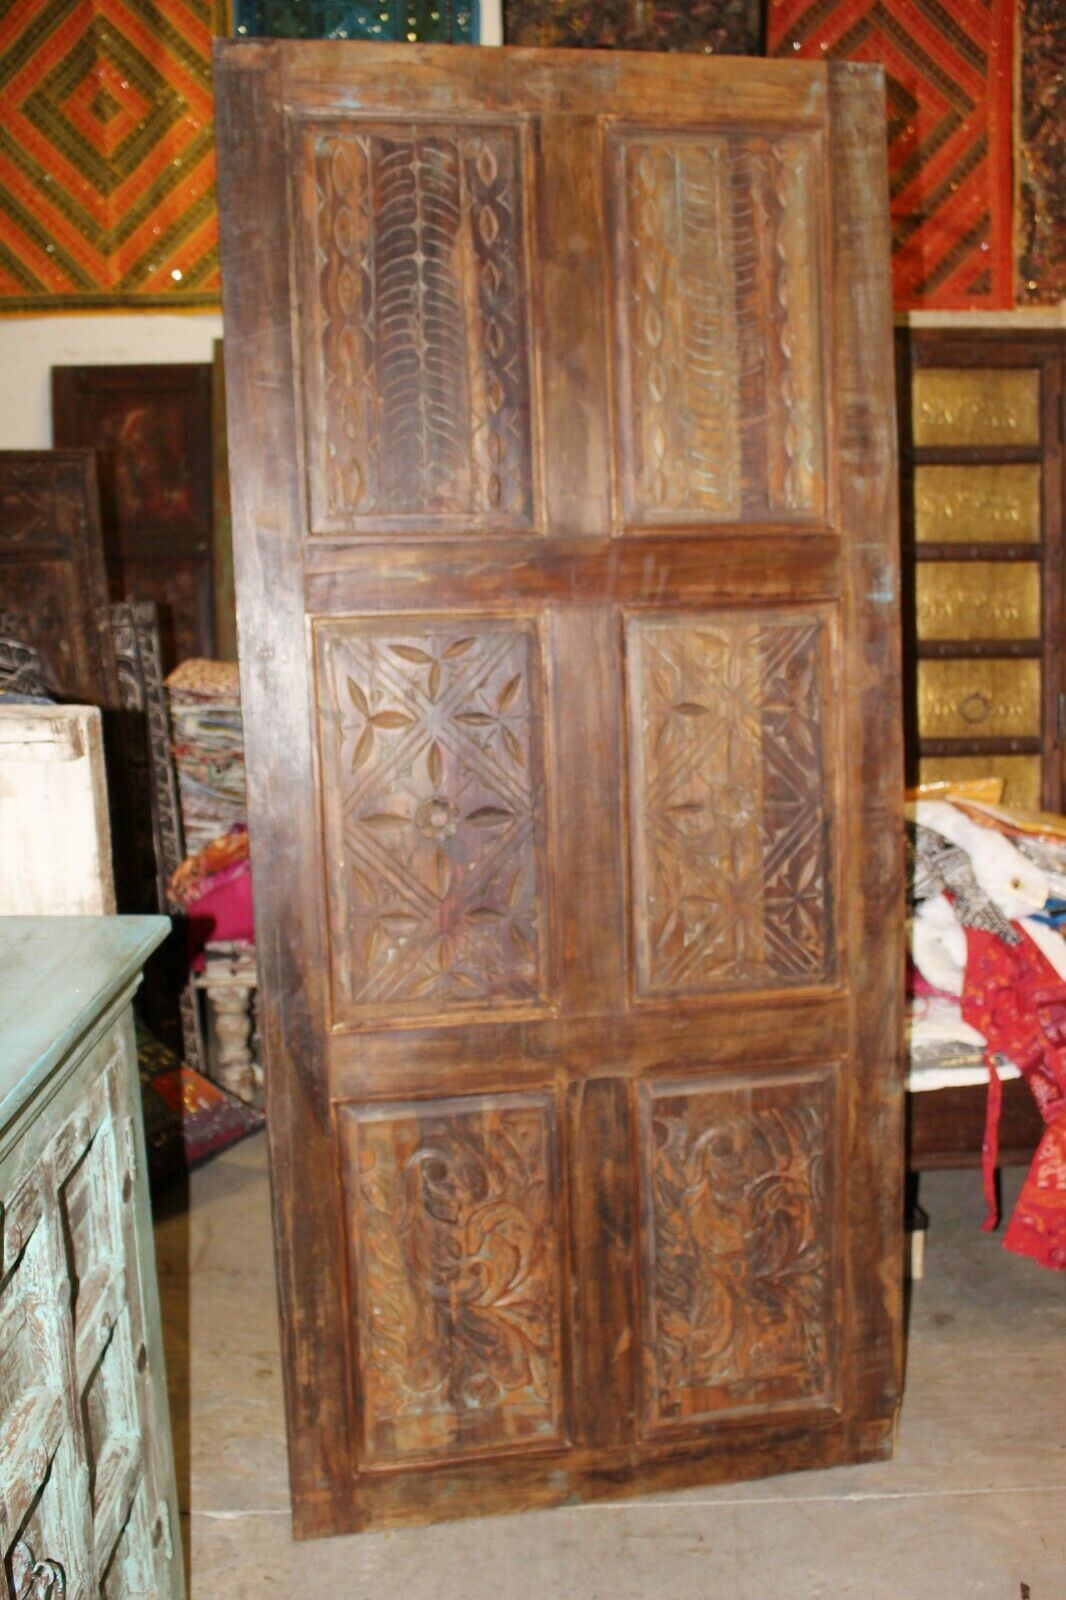 Antique cARVED bARN dOOR Brown Old Wooden Door Panel bedroom